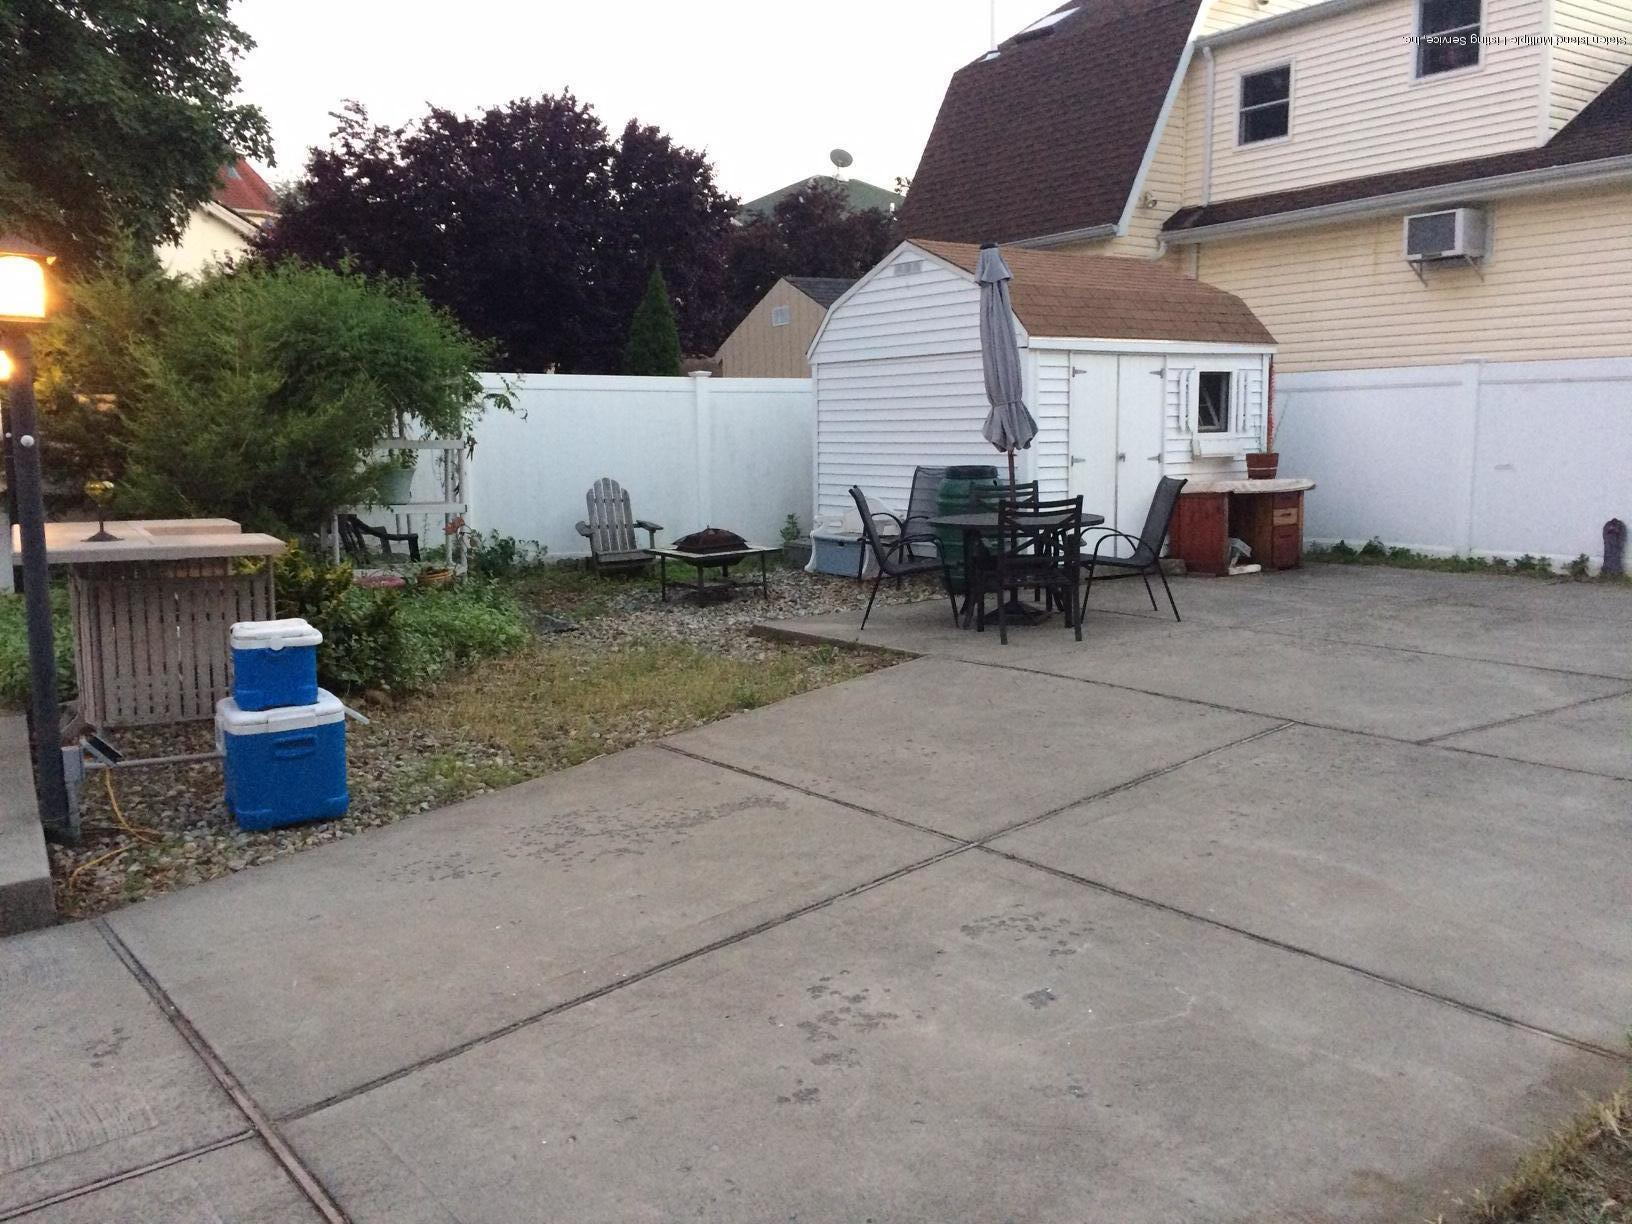 Single Family - Detached 362 Brehaut Avenue  Staten Island, NY 10307, MLS-1120848-25